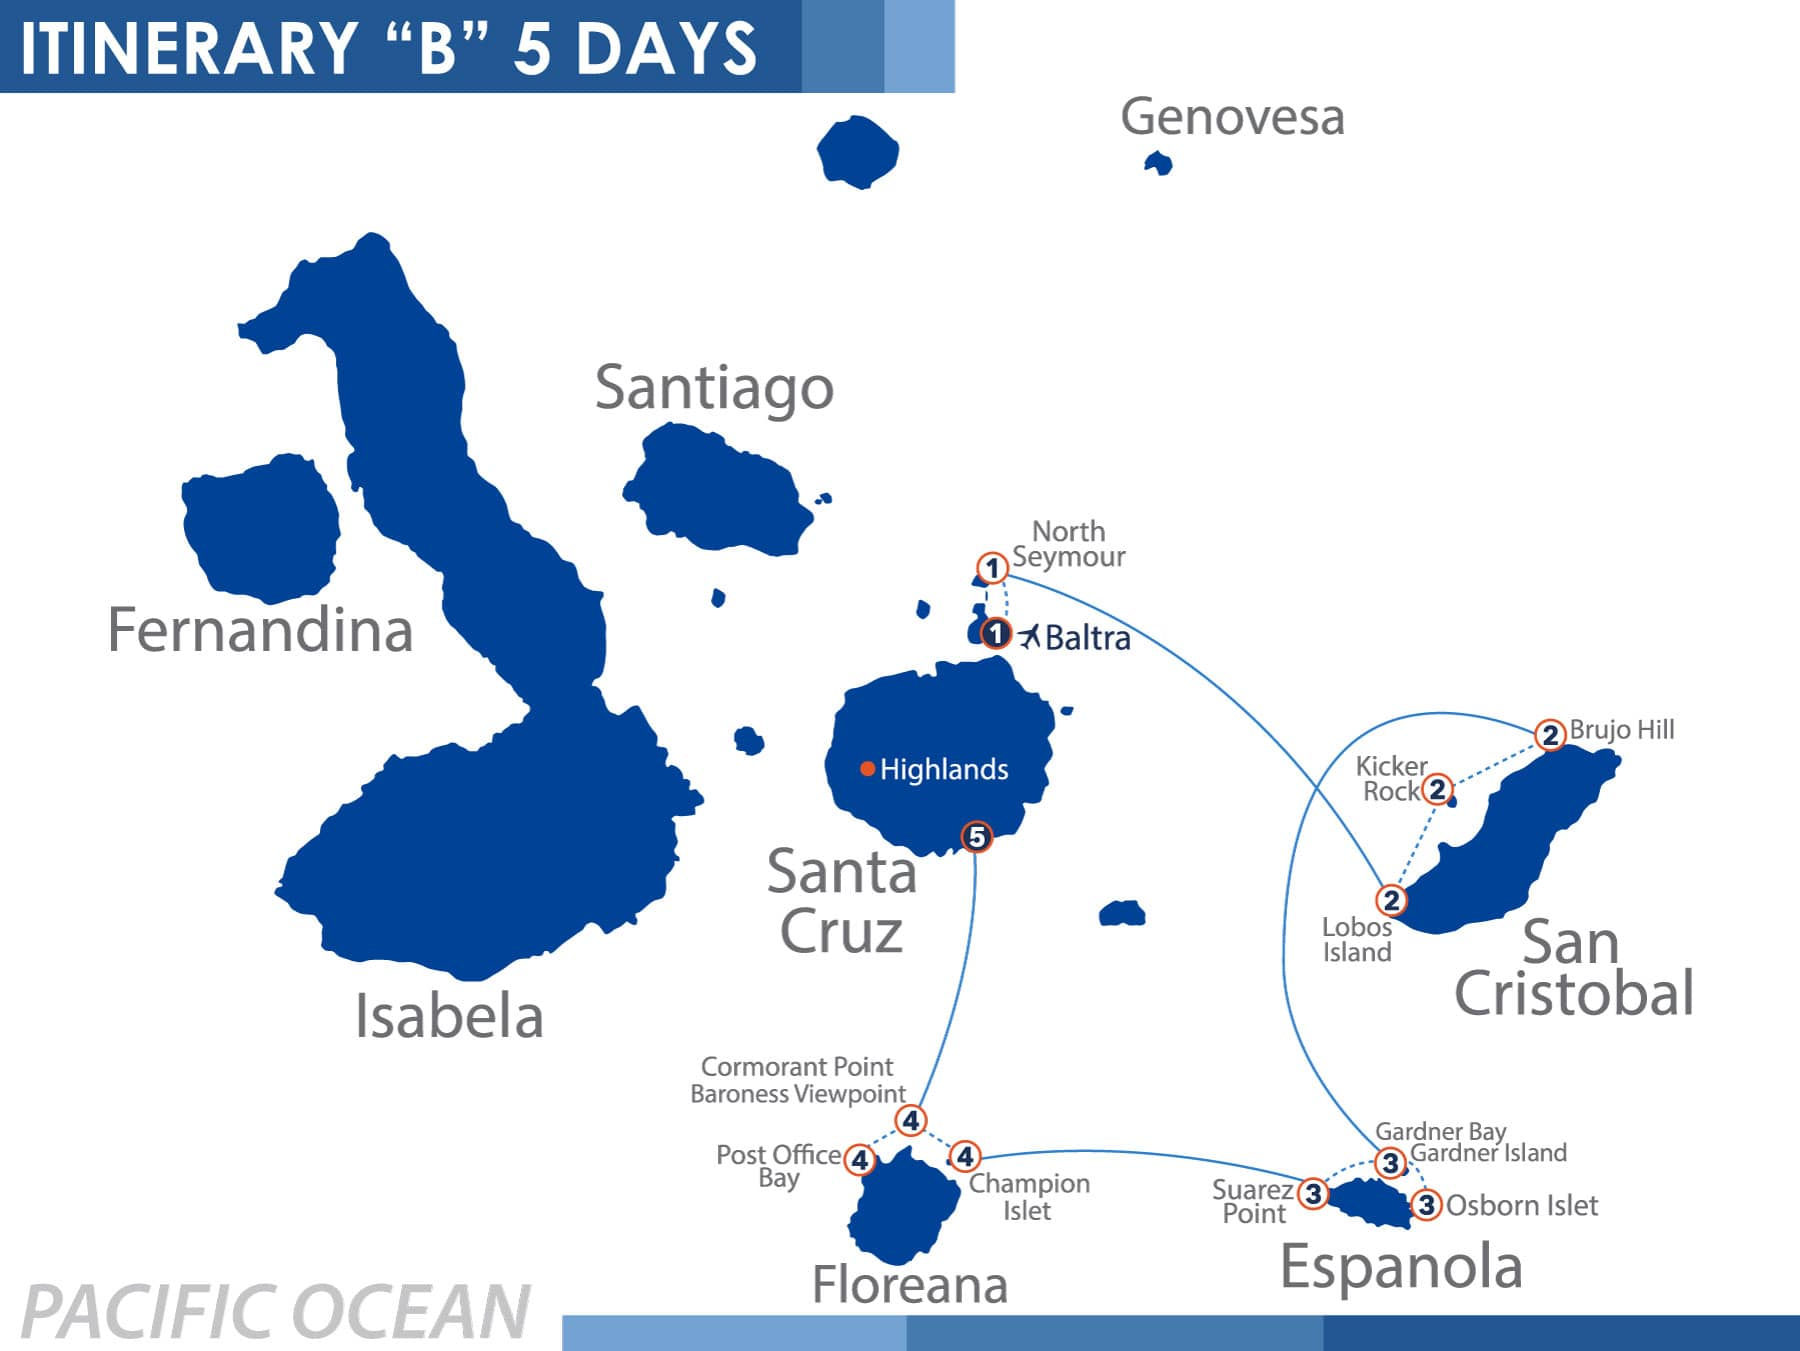 South Itinerary Nemo III Galapagos Cruise